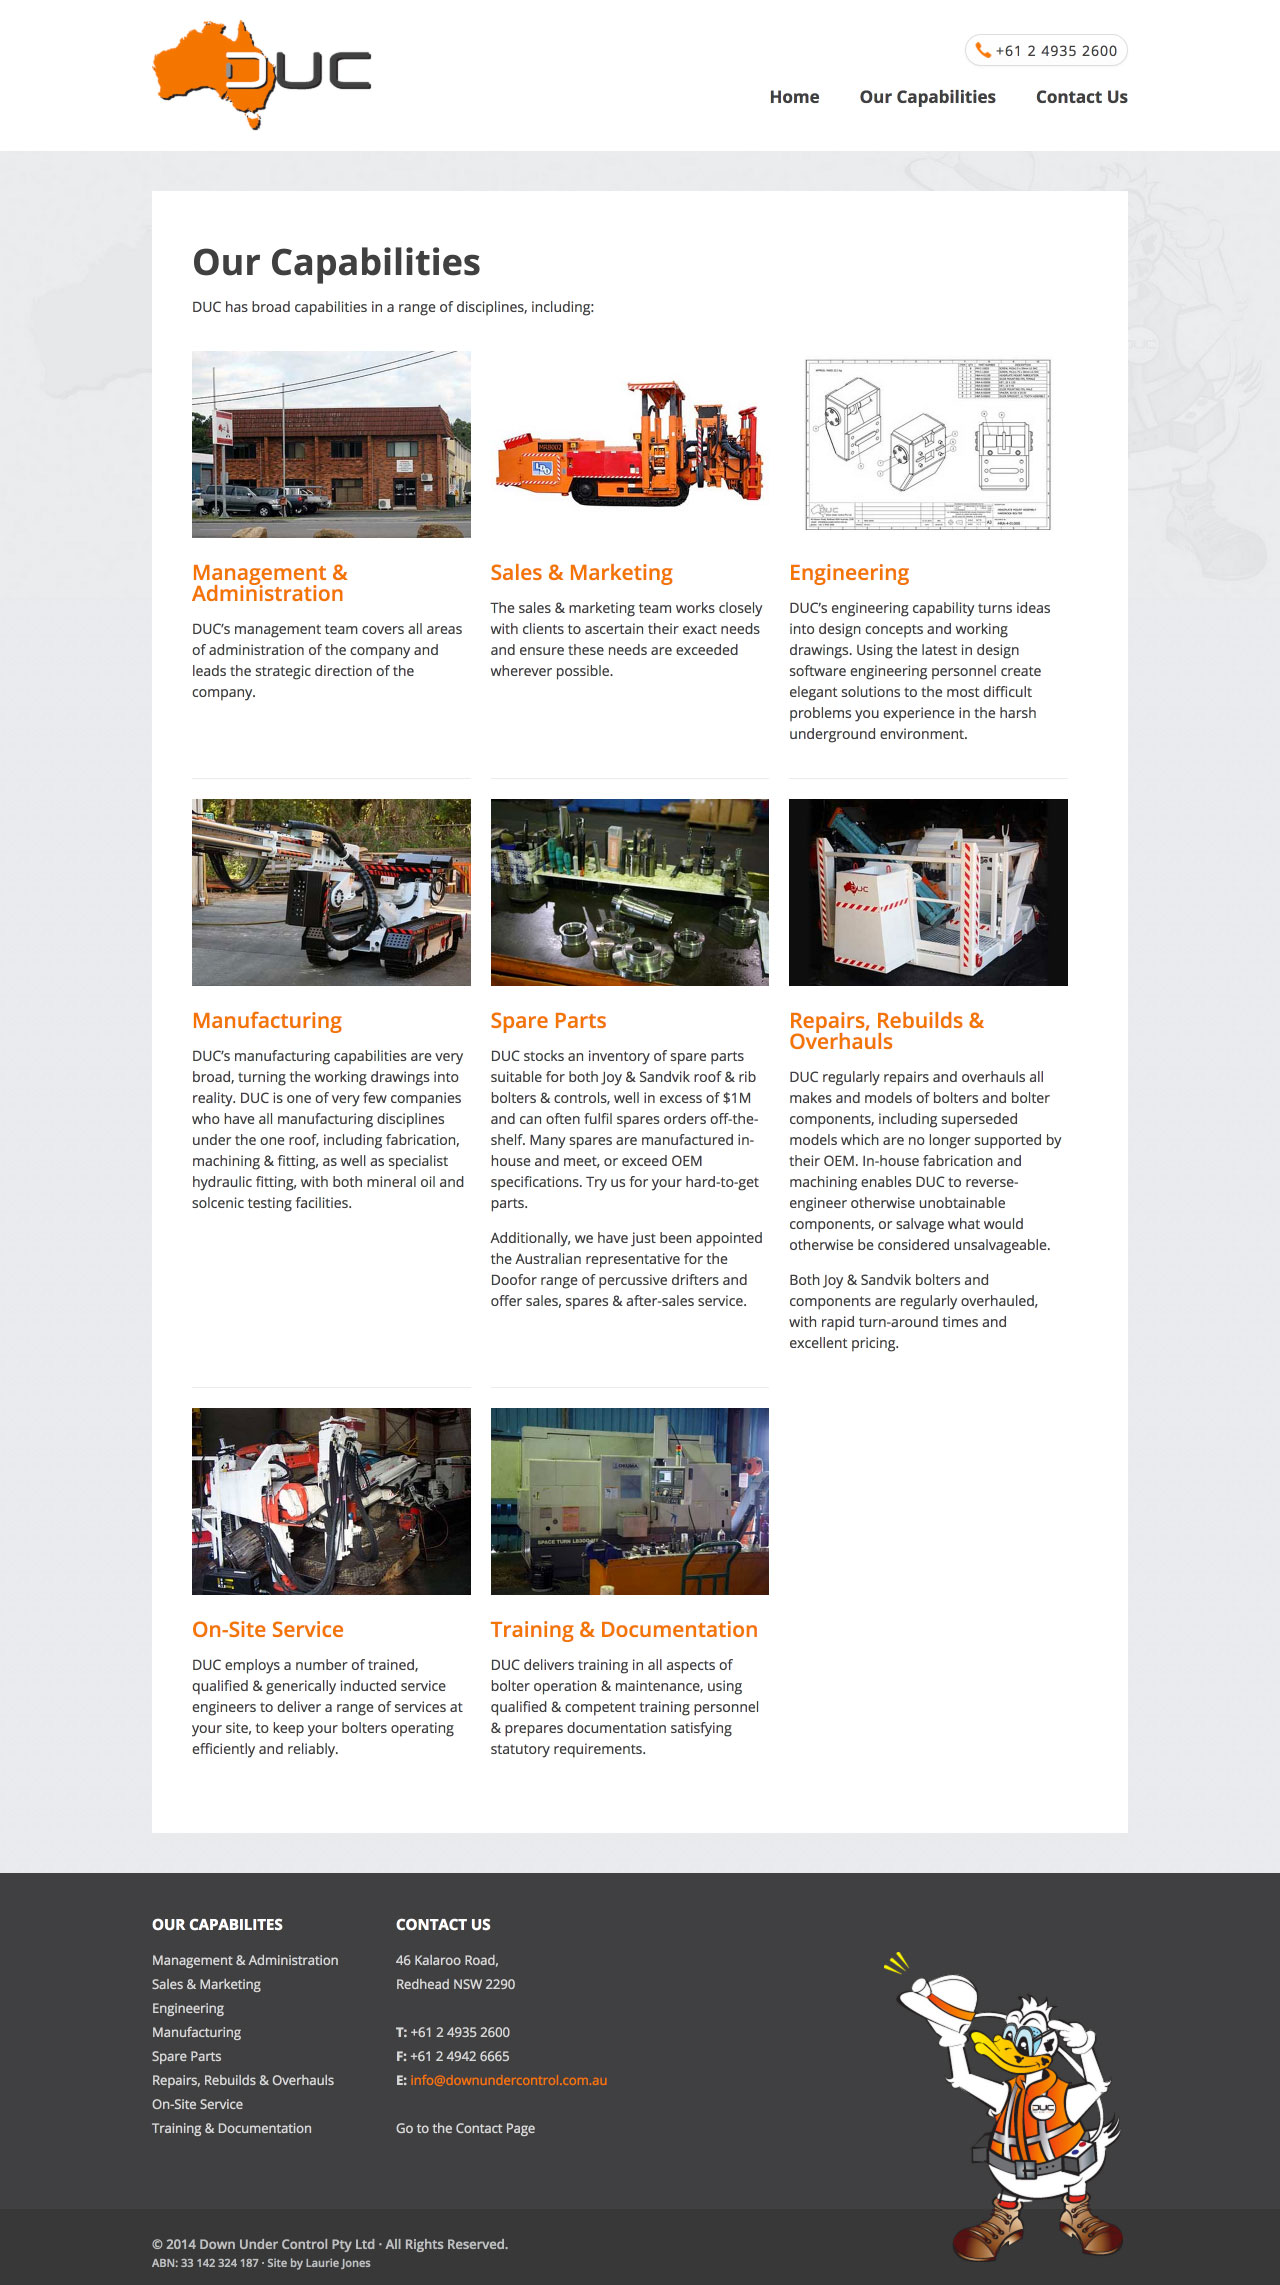 Capabilities Page Design